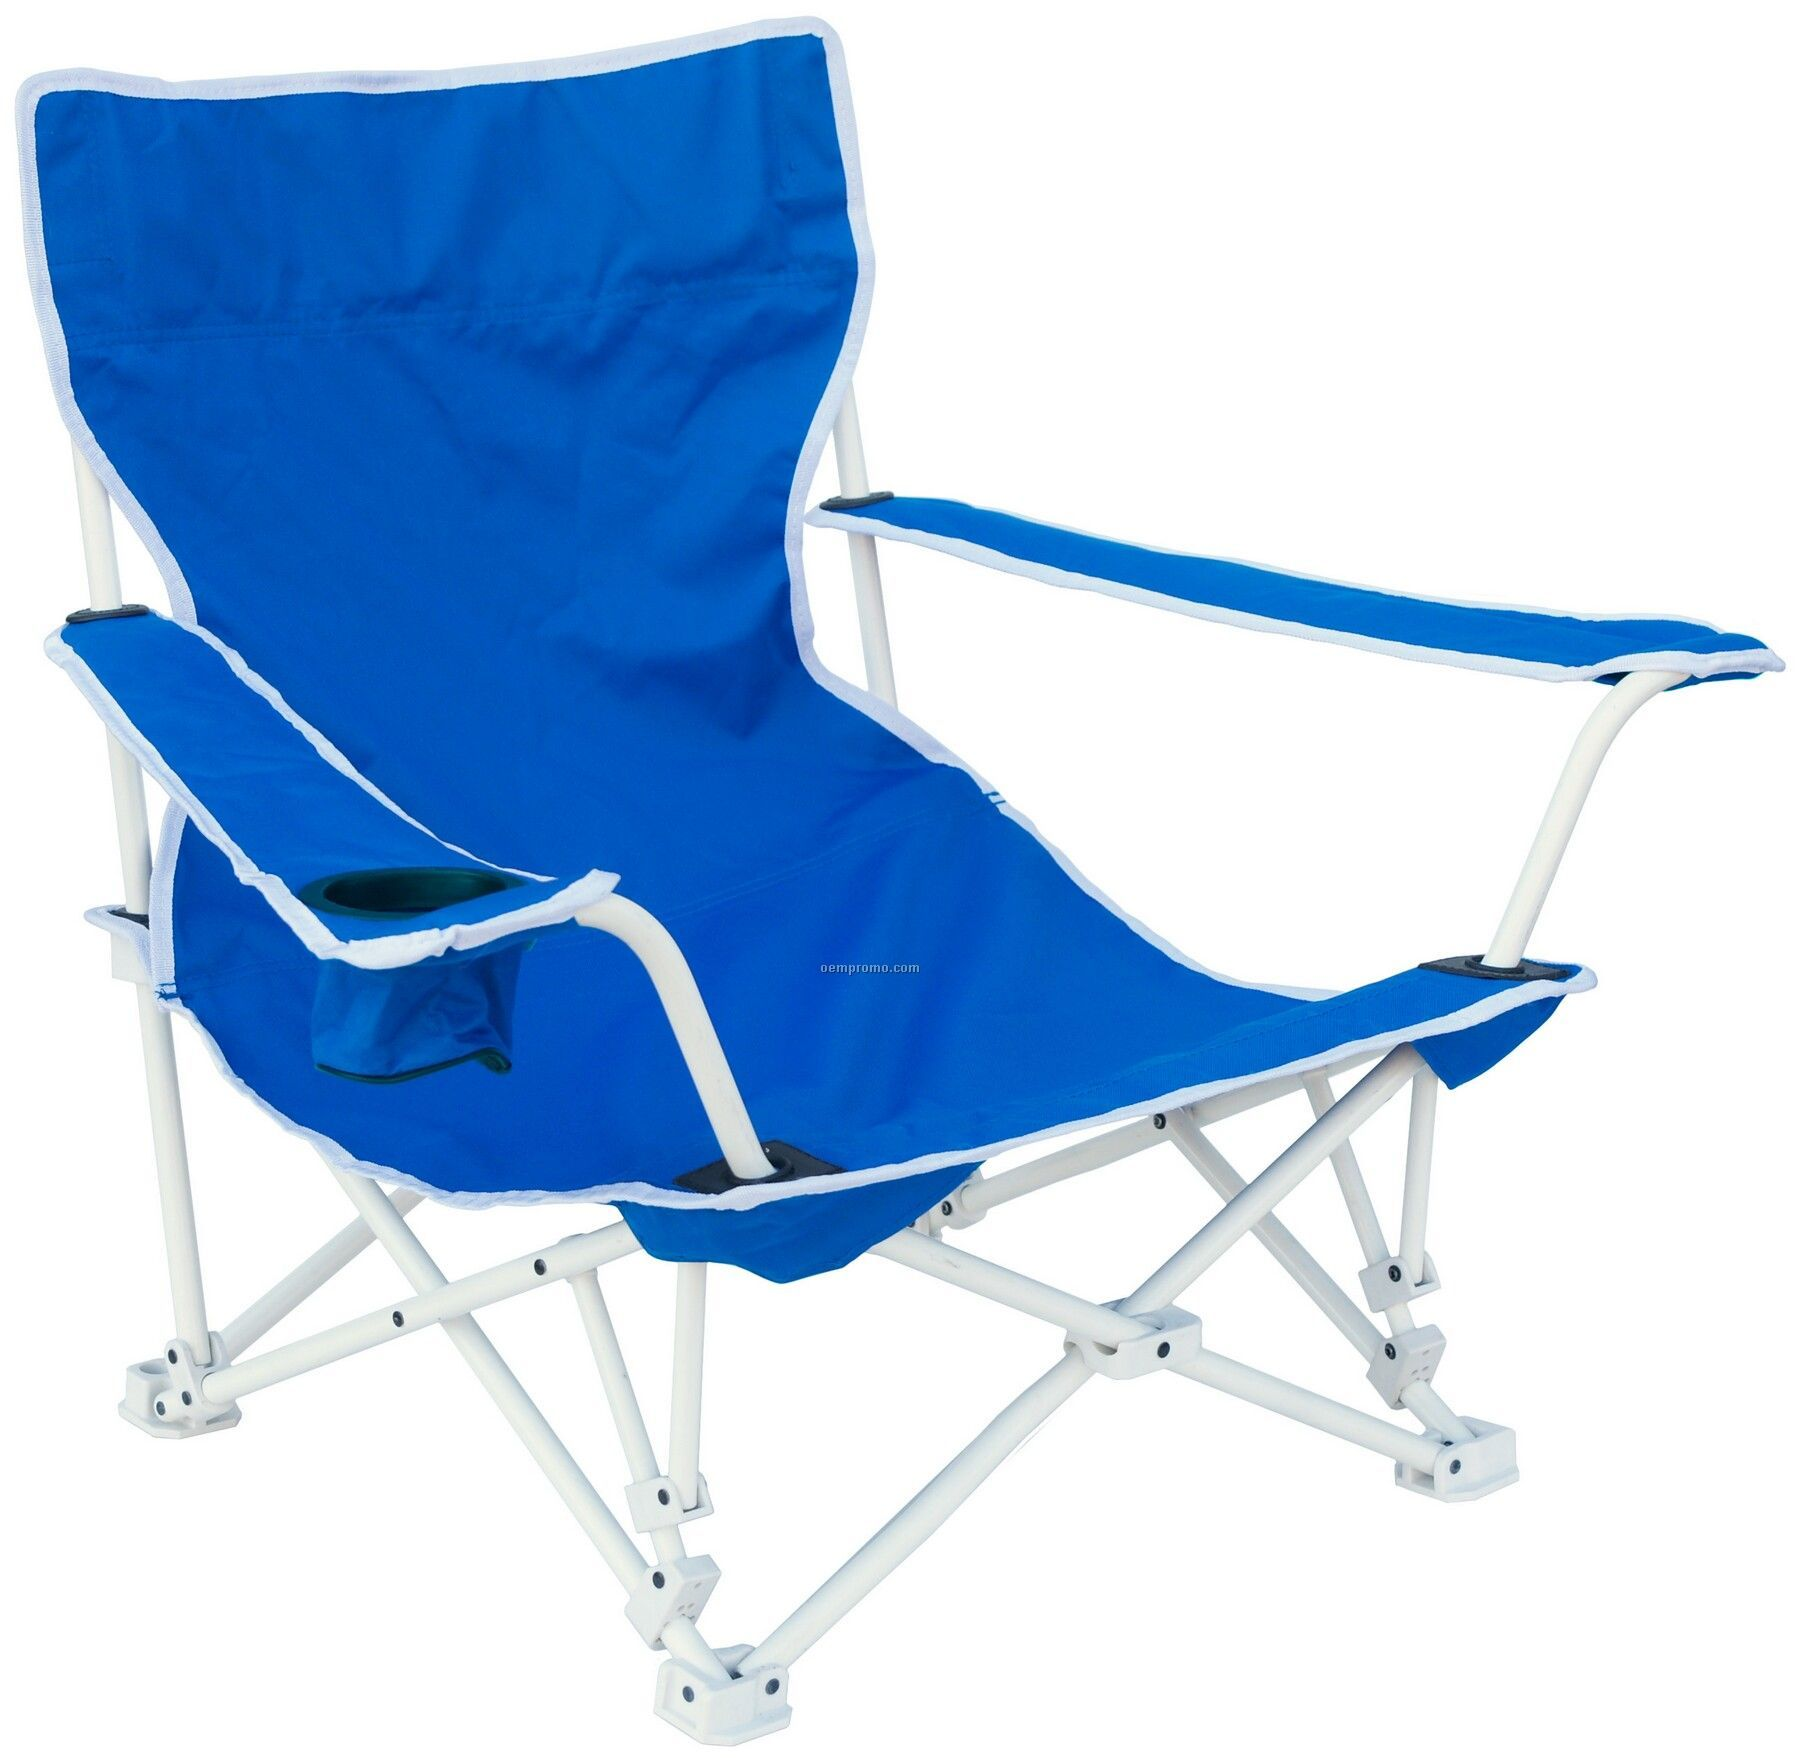 Description Direct Import Deluxe Collapsible Folding Beach Chair With